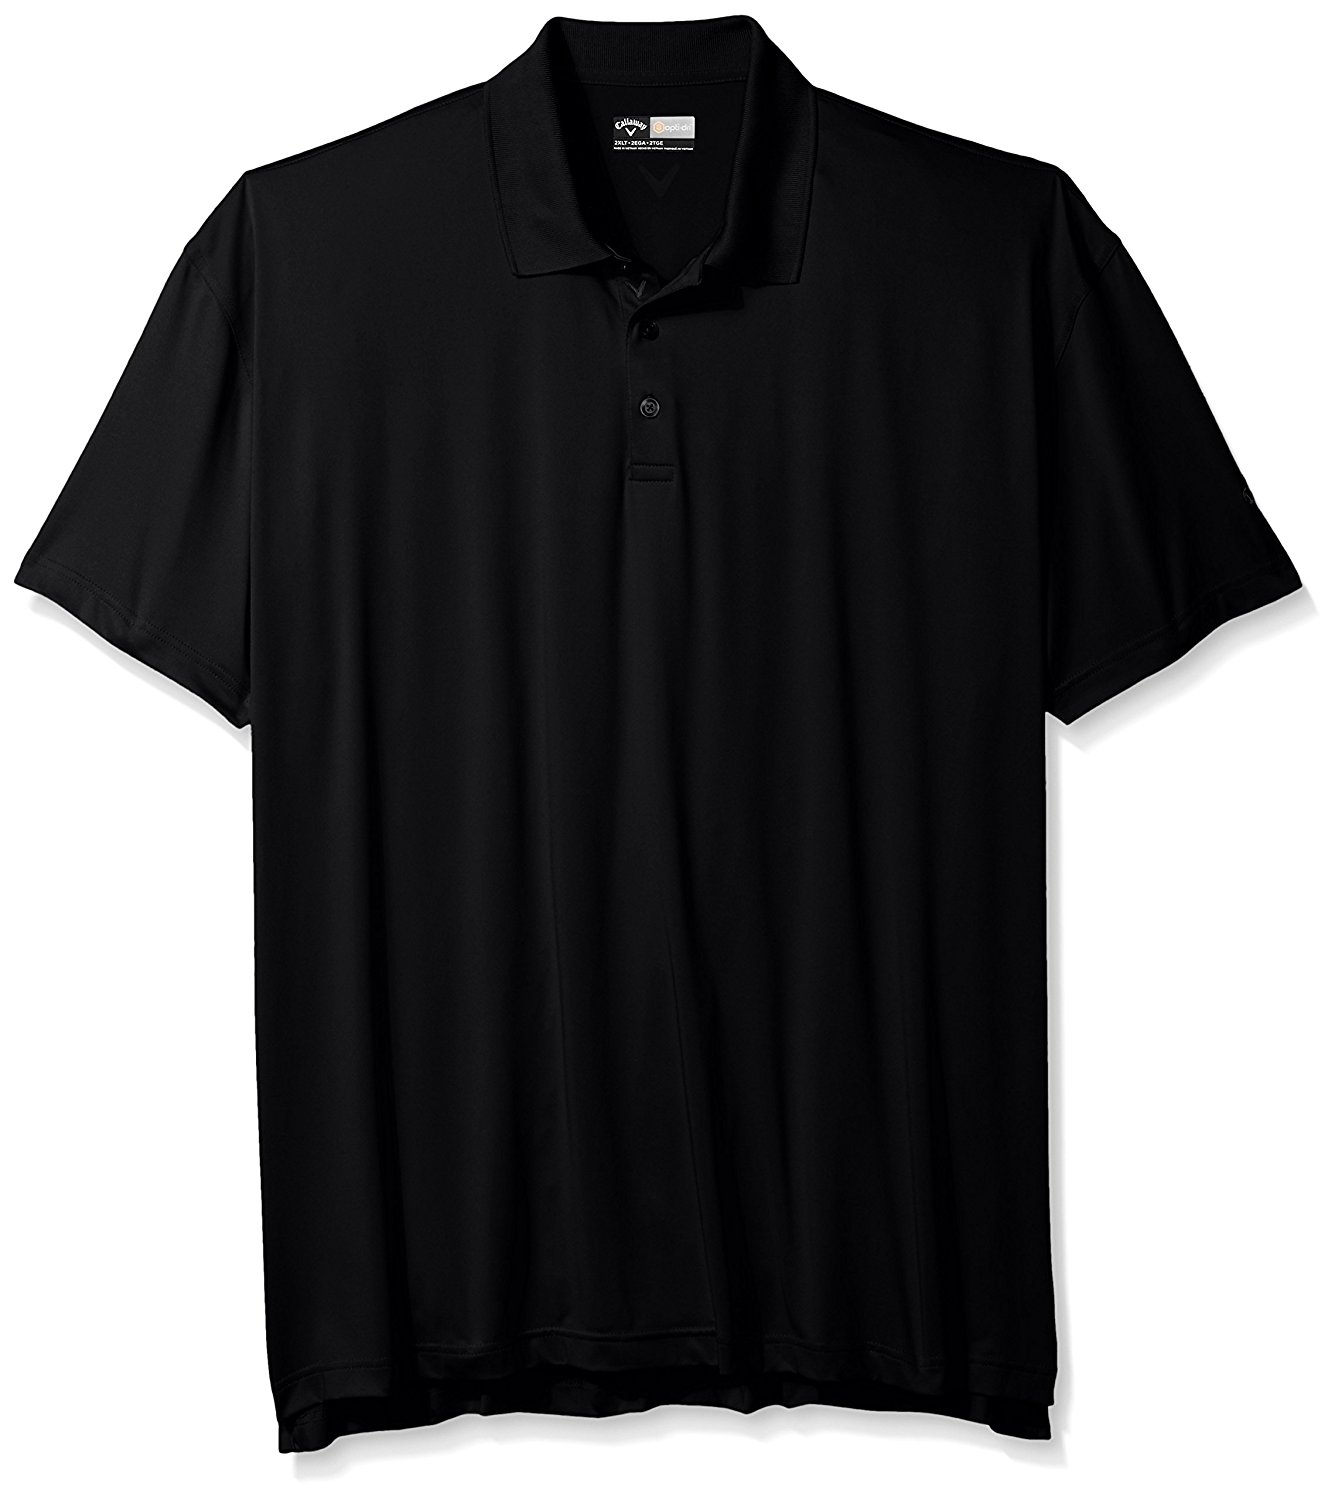 Callaway Men's Big & Tall Golf Performance Solid Short Sleeve Polo Shirt